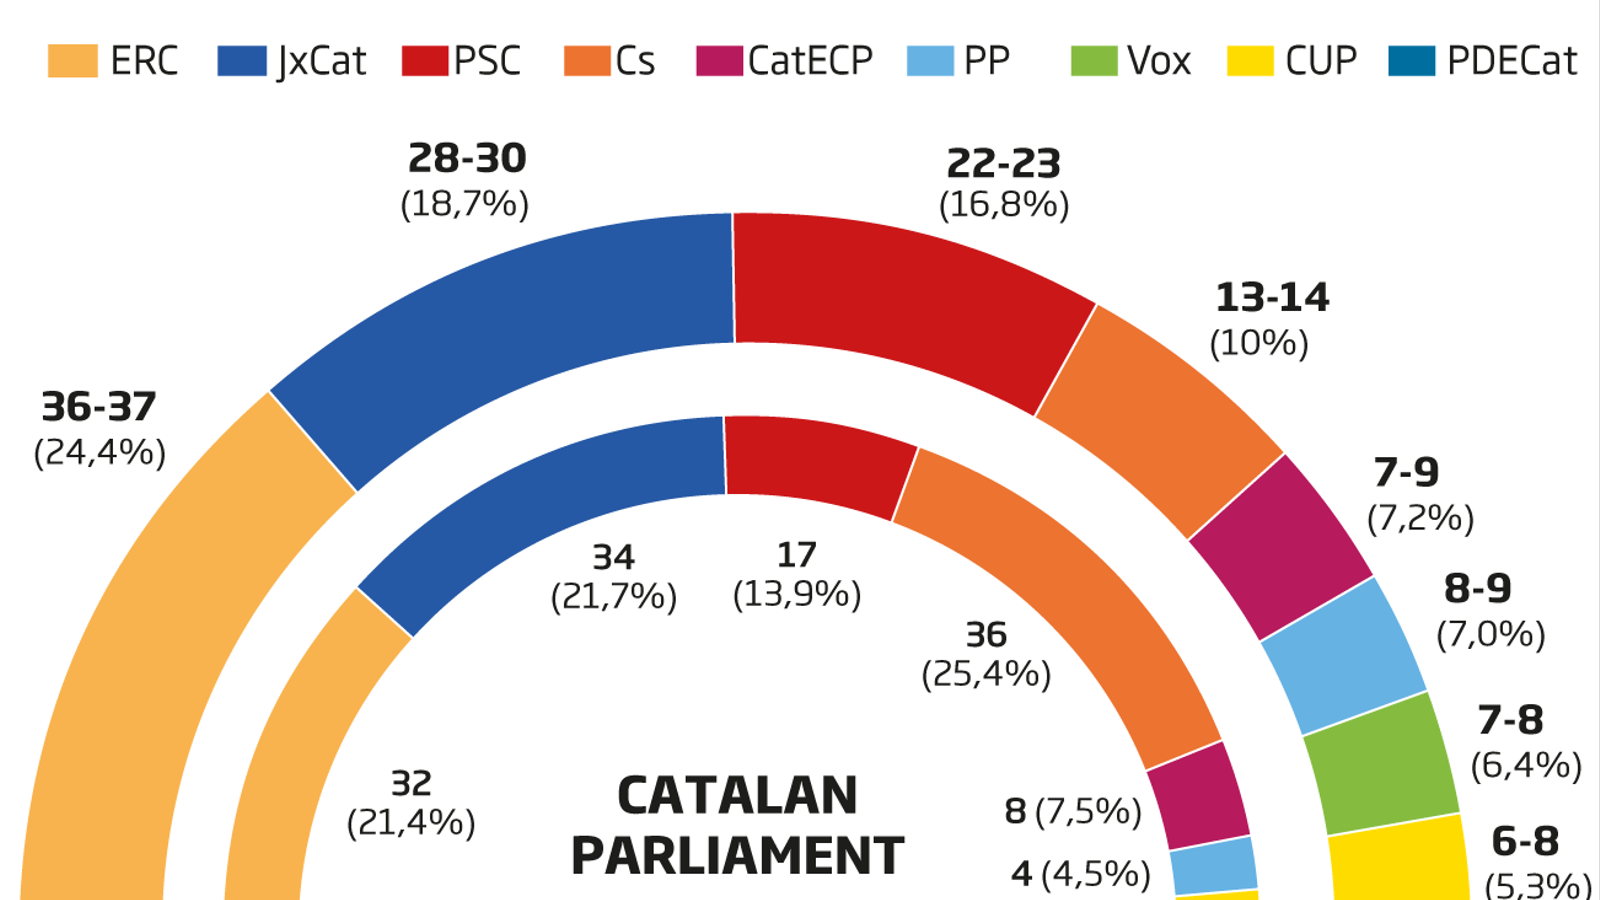 ERC increases lead over JxCat and would win the next Parliamentary elections